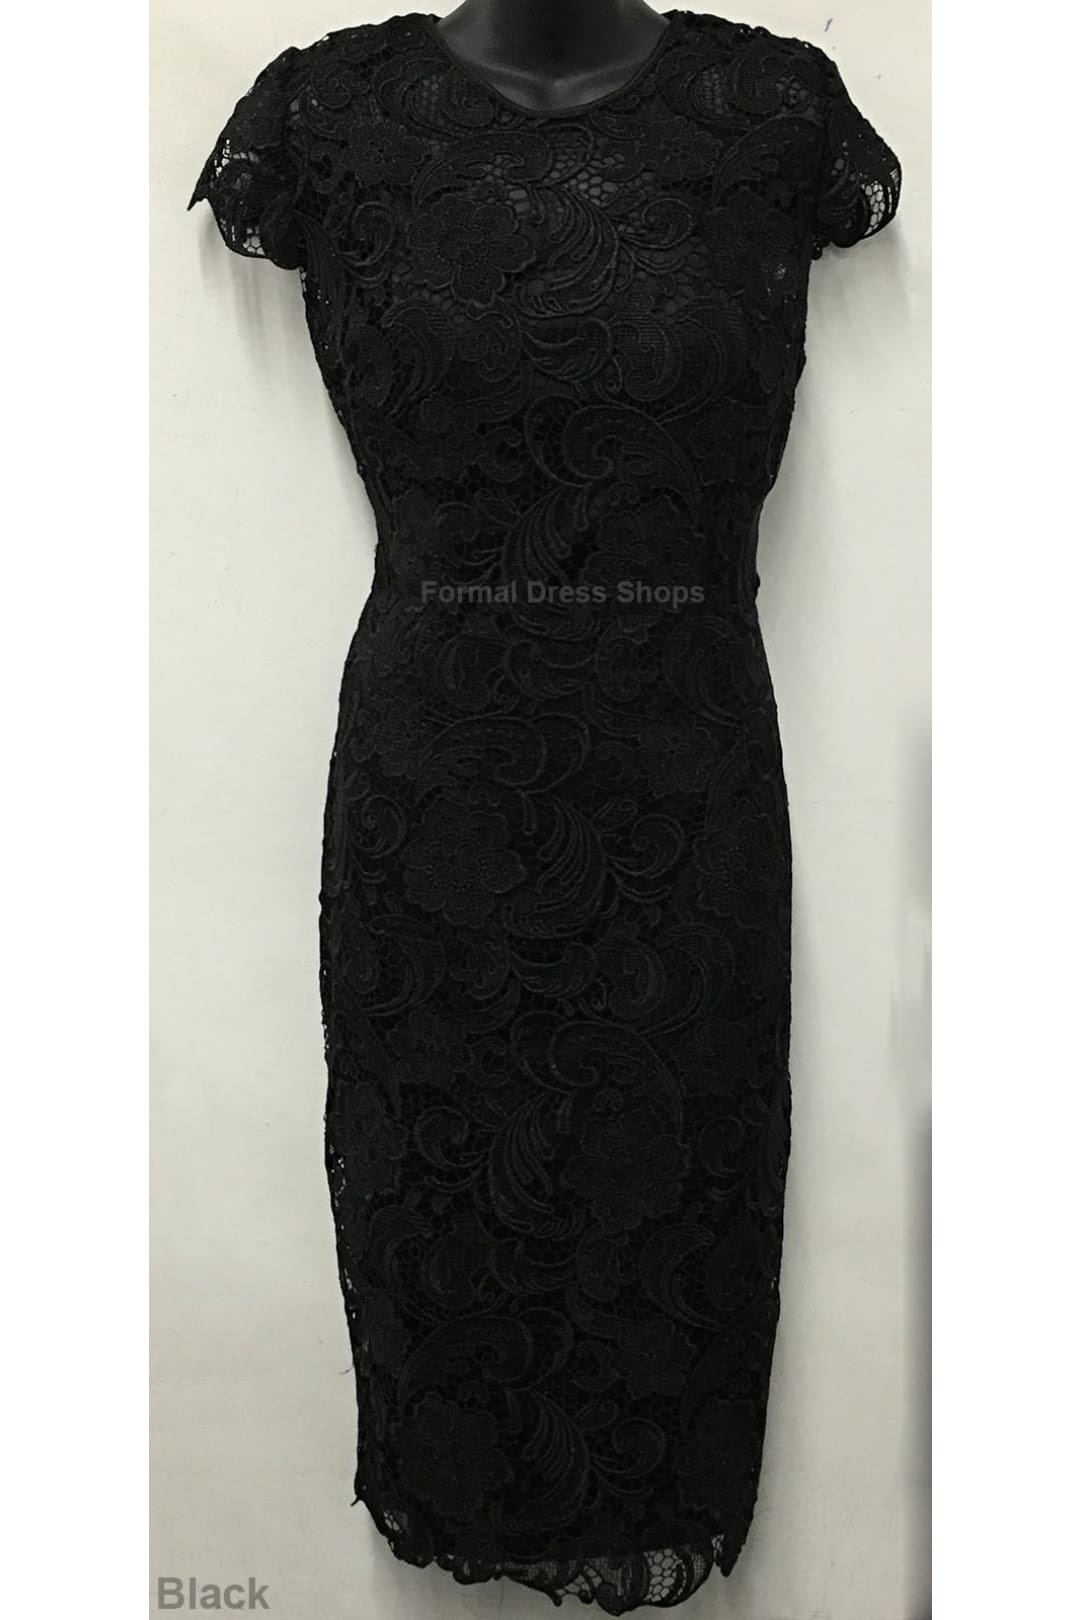 Classy Short Mother of the Groom Dress - Black / 4XL